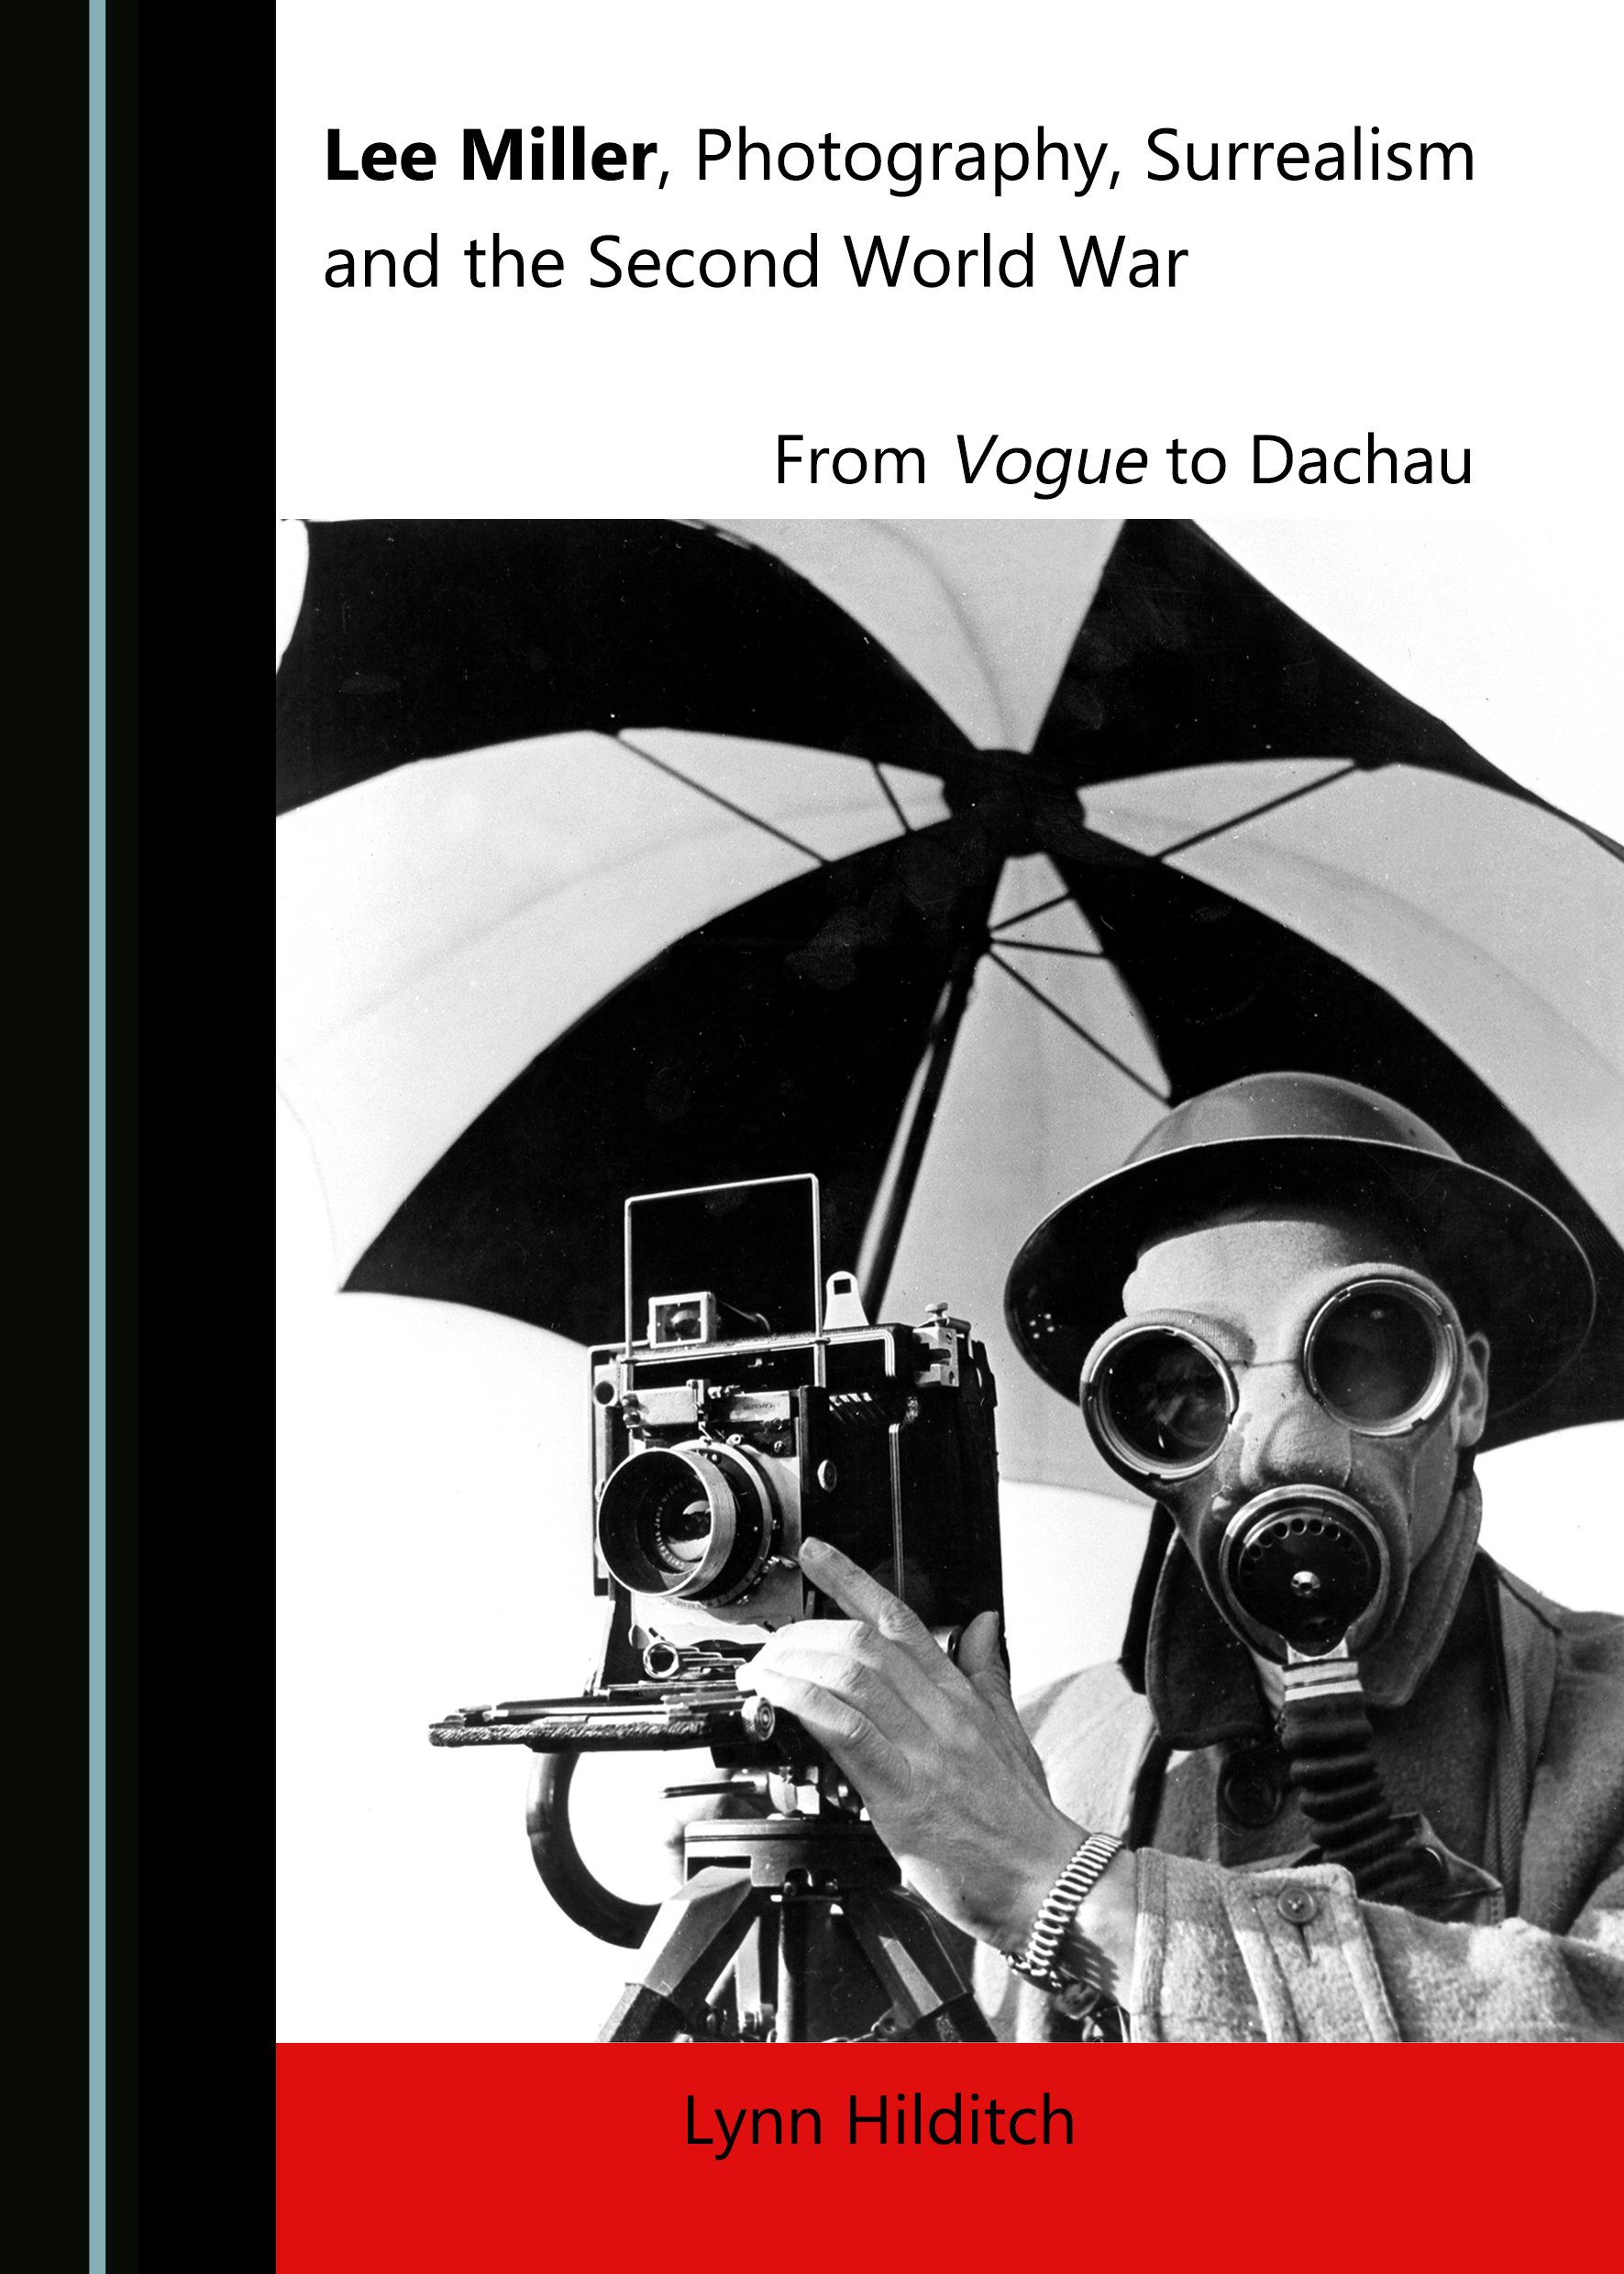 Lee Miller, Photography, Surrealism and the Second World War: From Vogue to Dachau